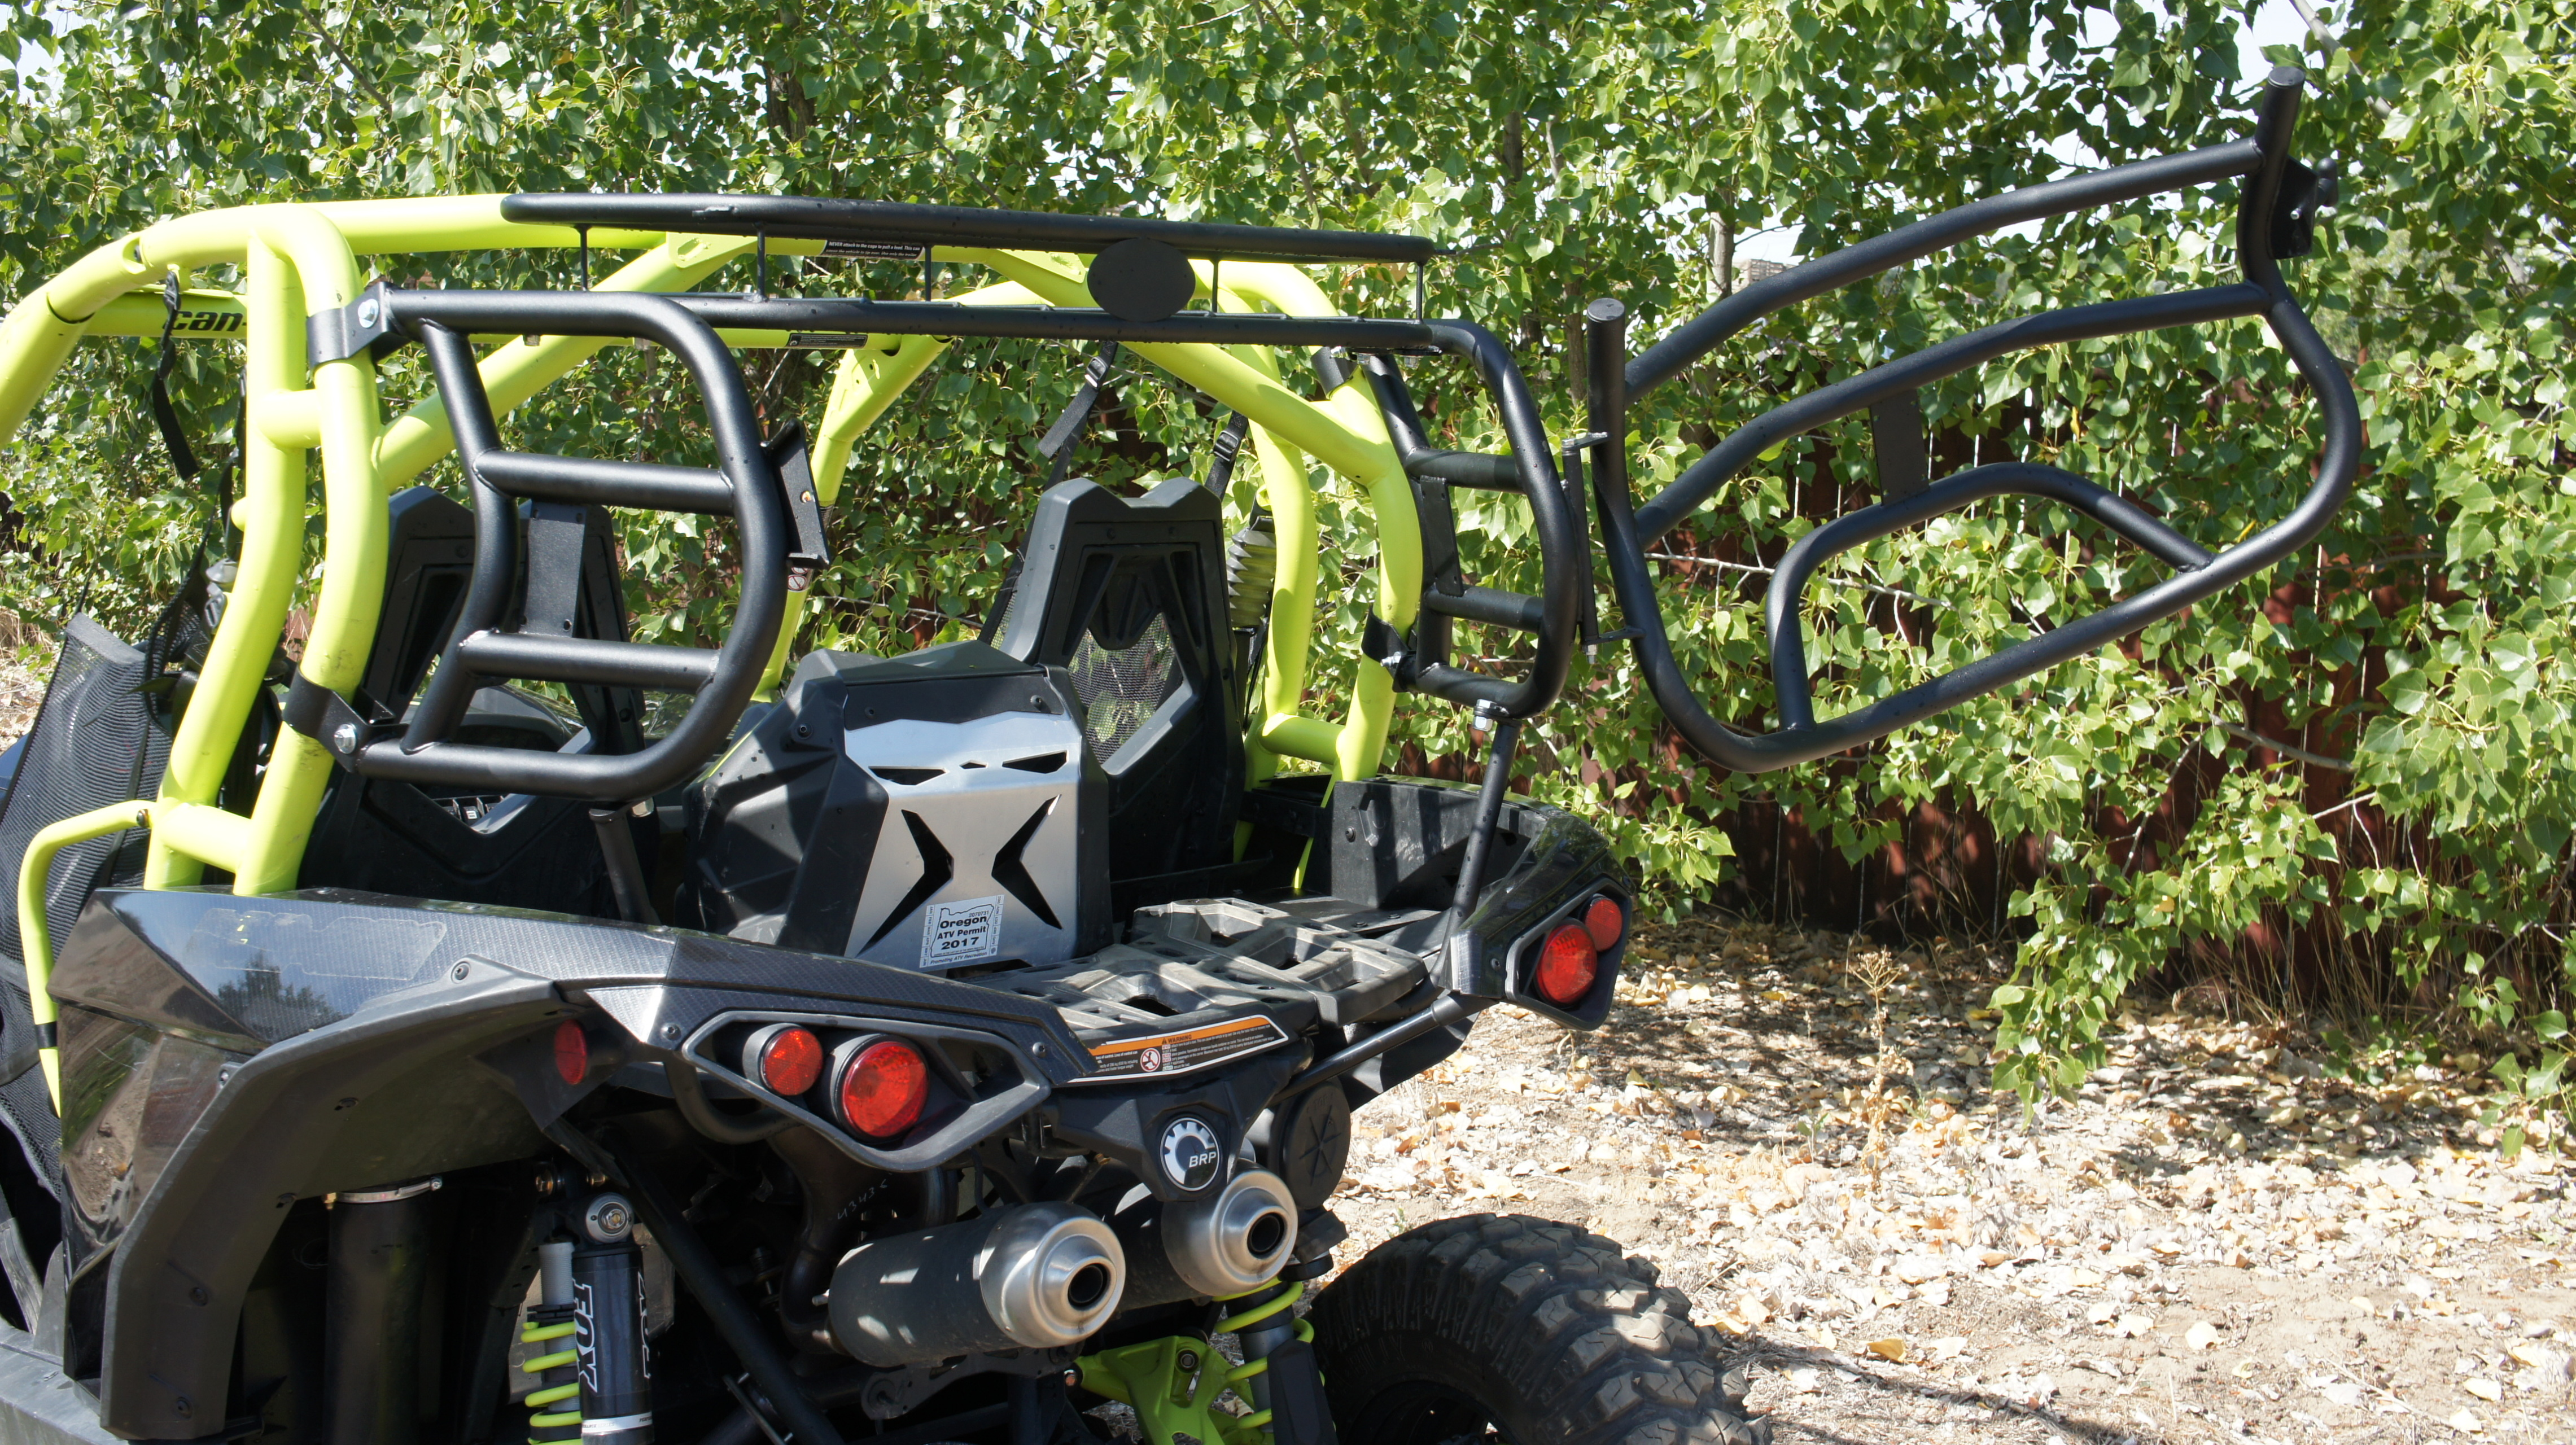 Razorback Offroad Rear Racks For The Maverick Anybody